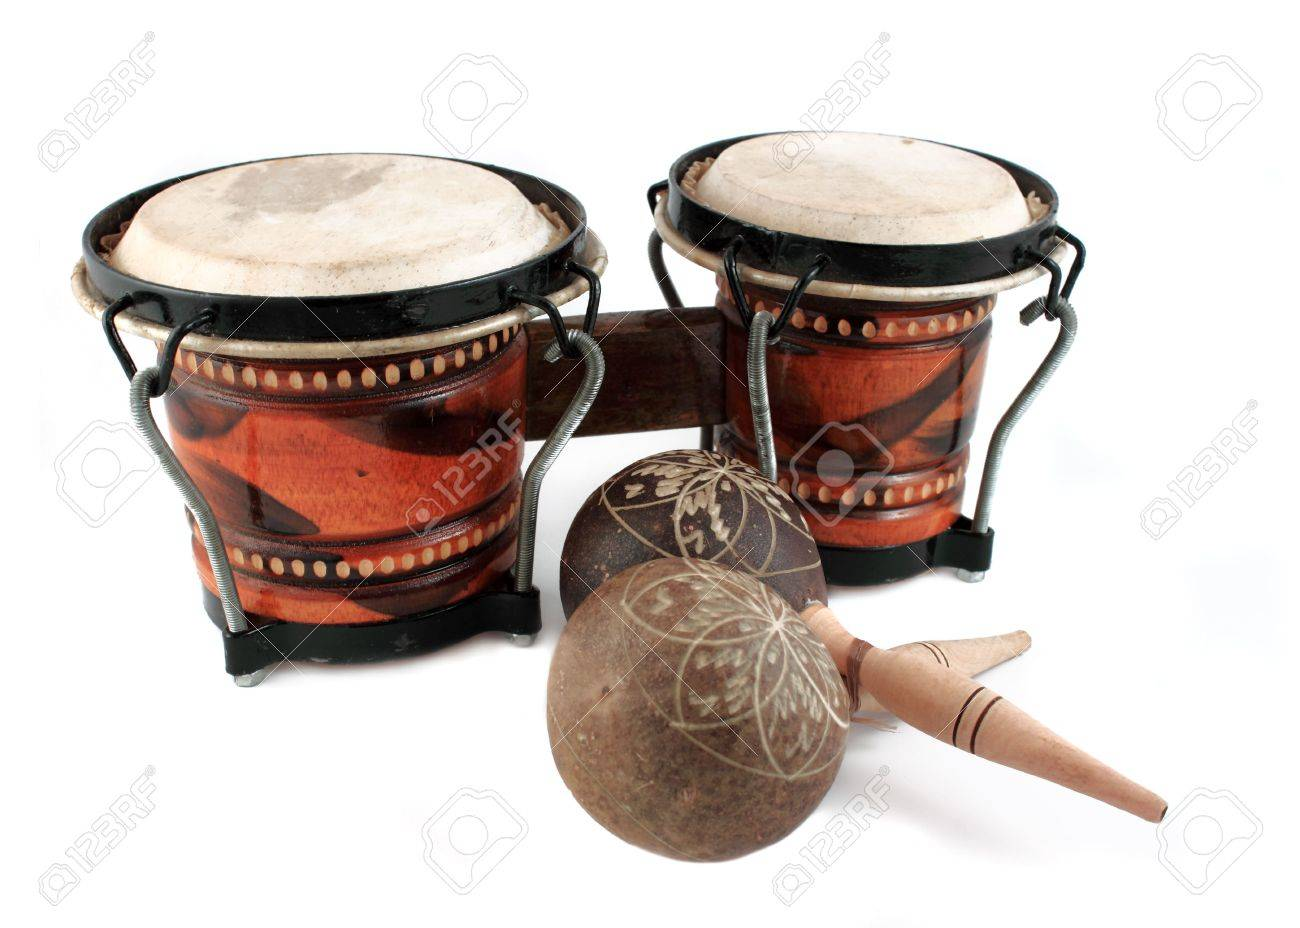 rhythm percussion instruments like maracas and bongo drums on